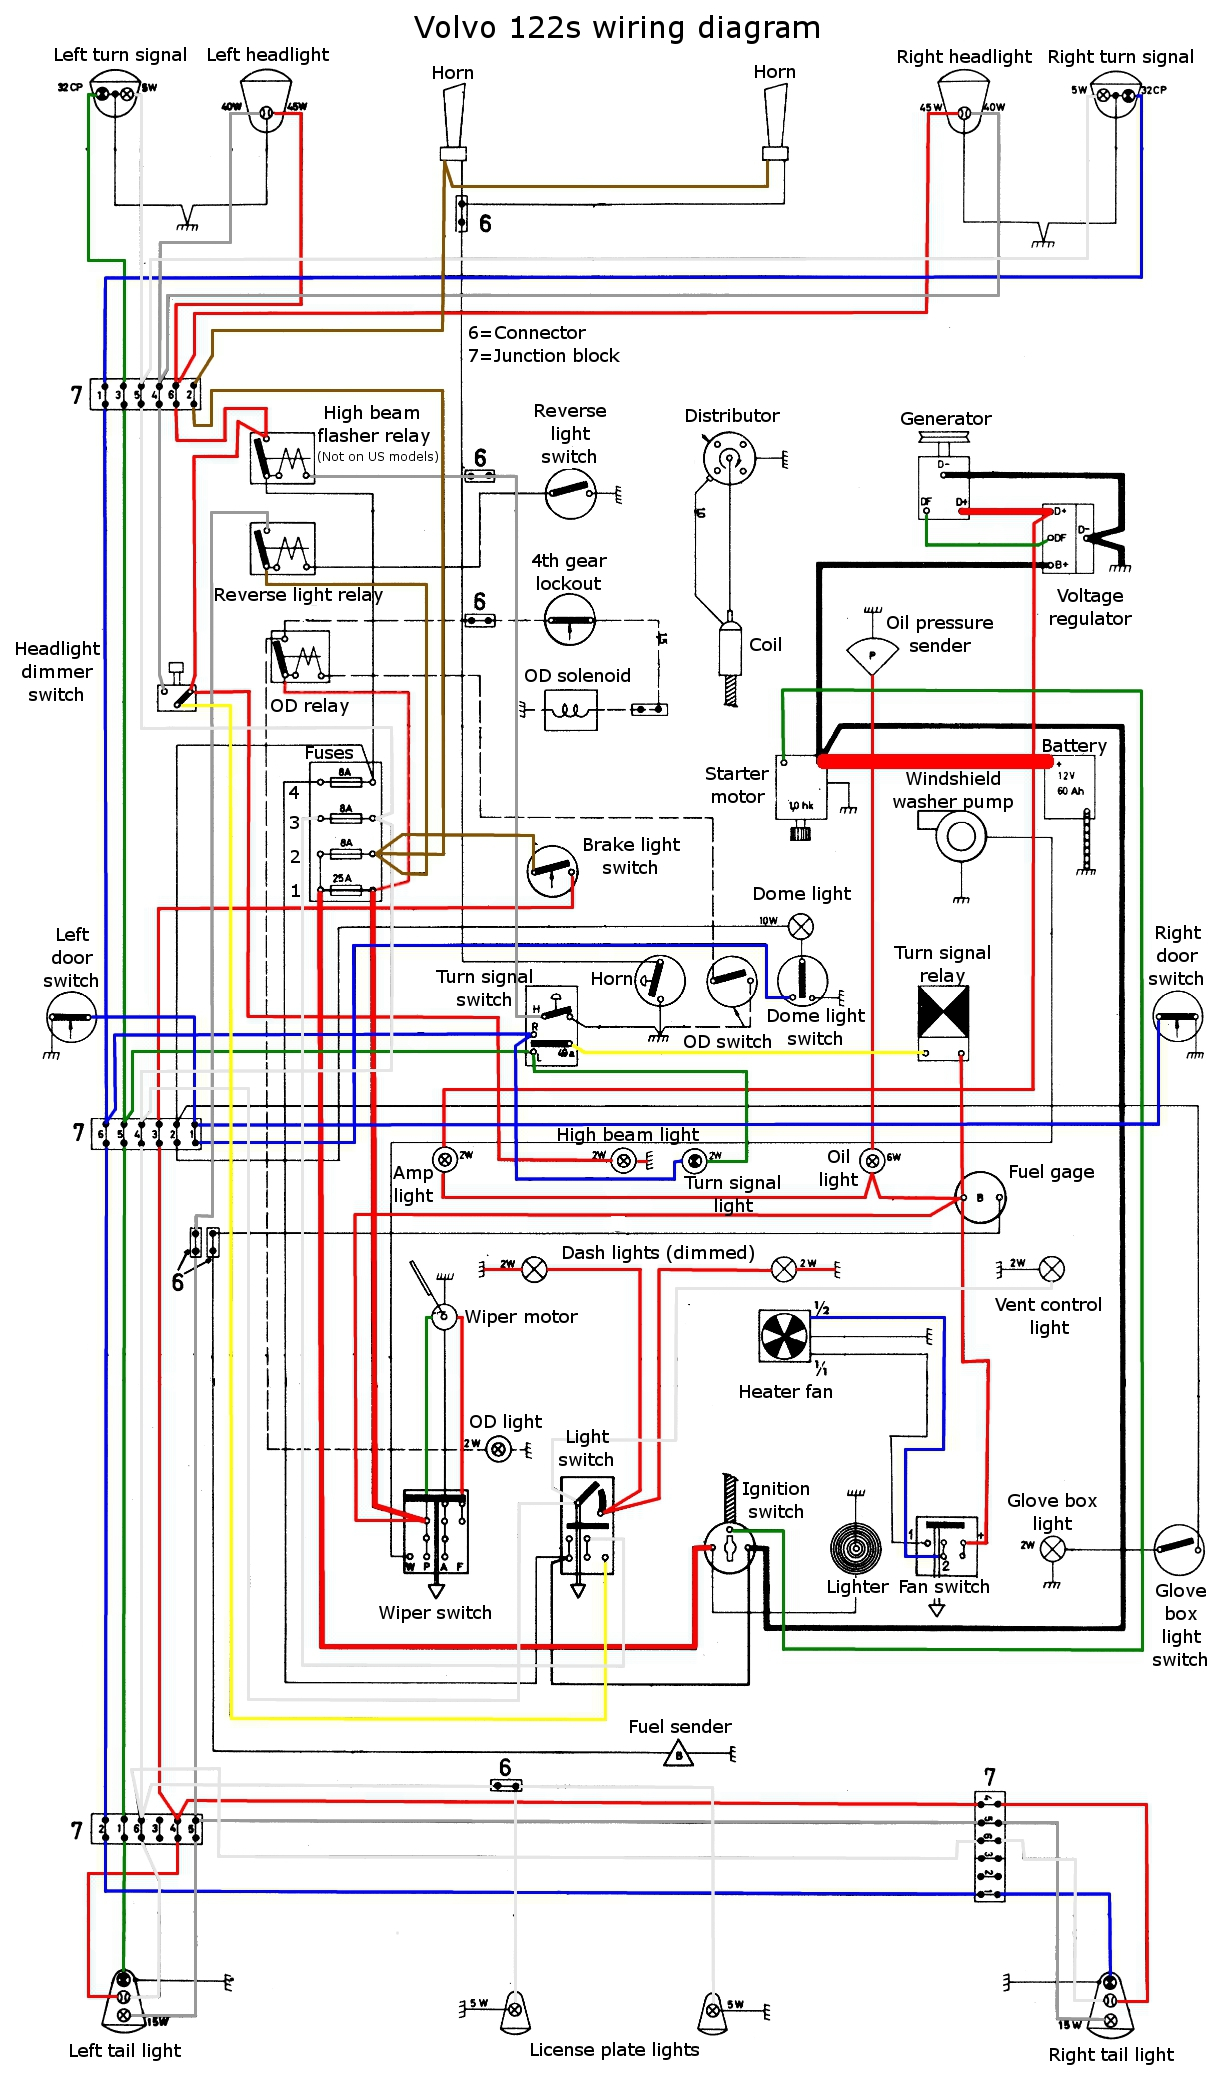 122 wiring diagram color wiring gremlins spaj 140 c wiring diagram at gsmx.co